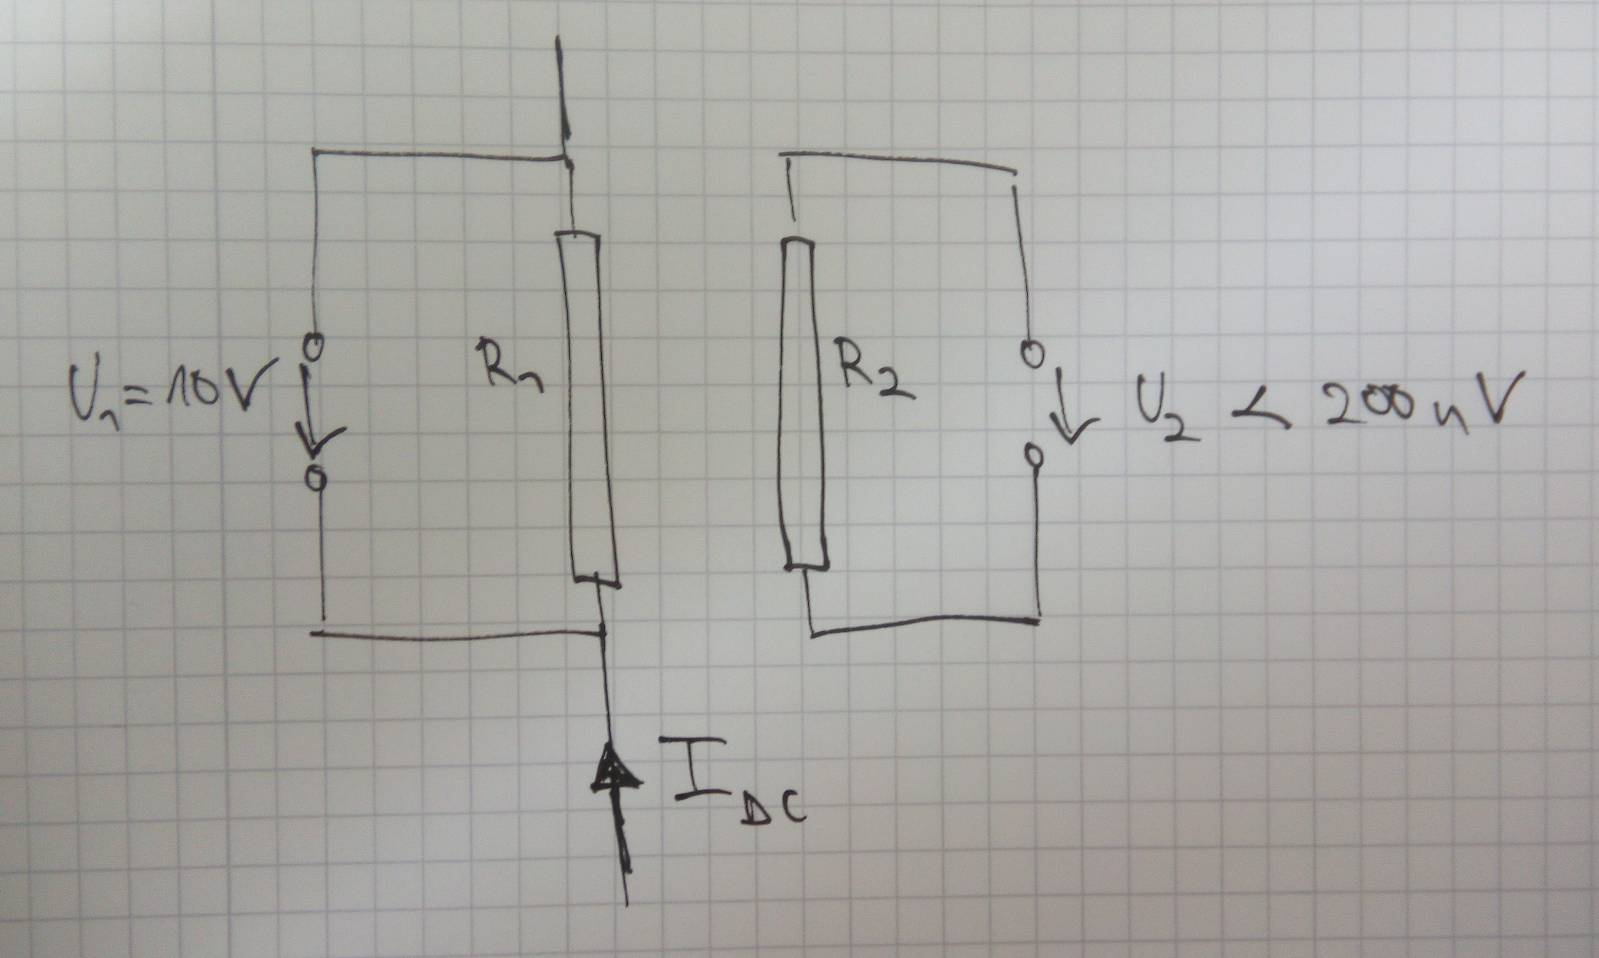 Input Bias Current Return Path Vs Resistor Noise Qa Ac Coupling And Offset Voltage In Amplifier I Have To Measure Both Voltages At The Same Time